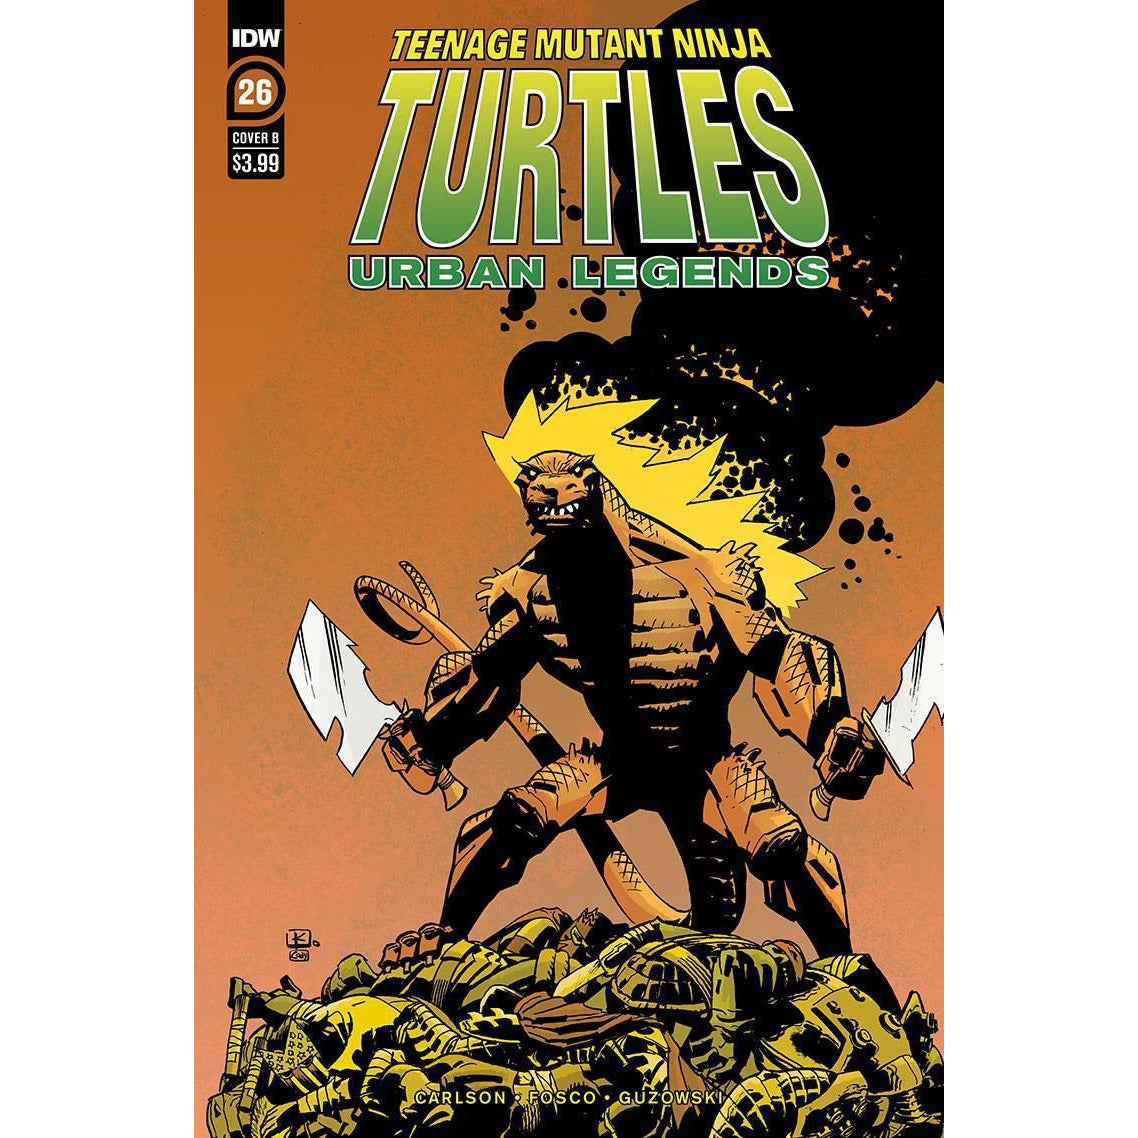 TMNT URBAN LEGENDS #26 - COVER B KUHN